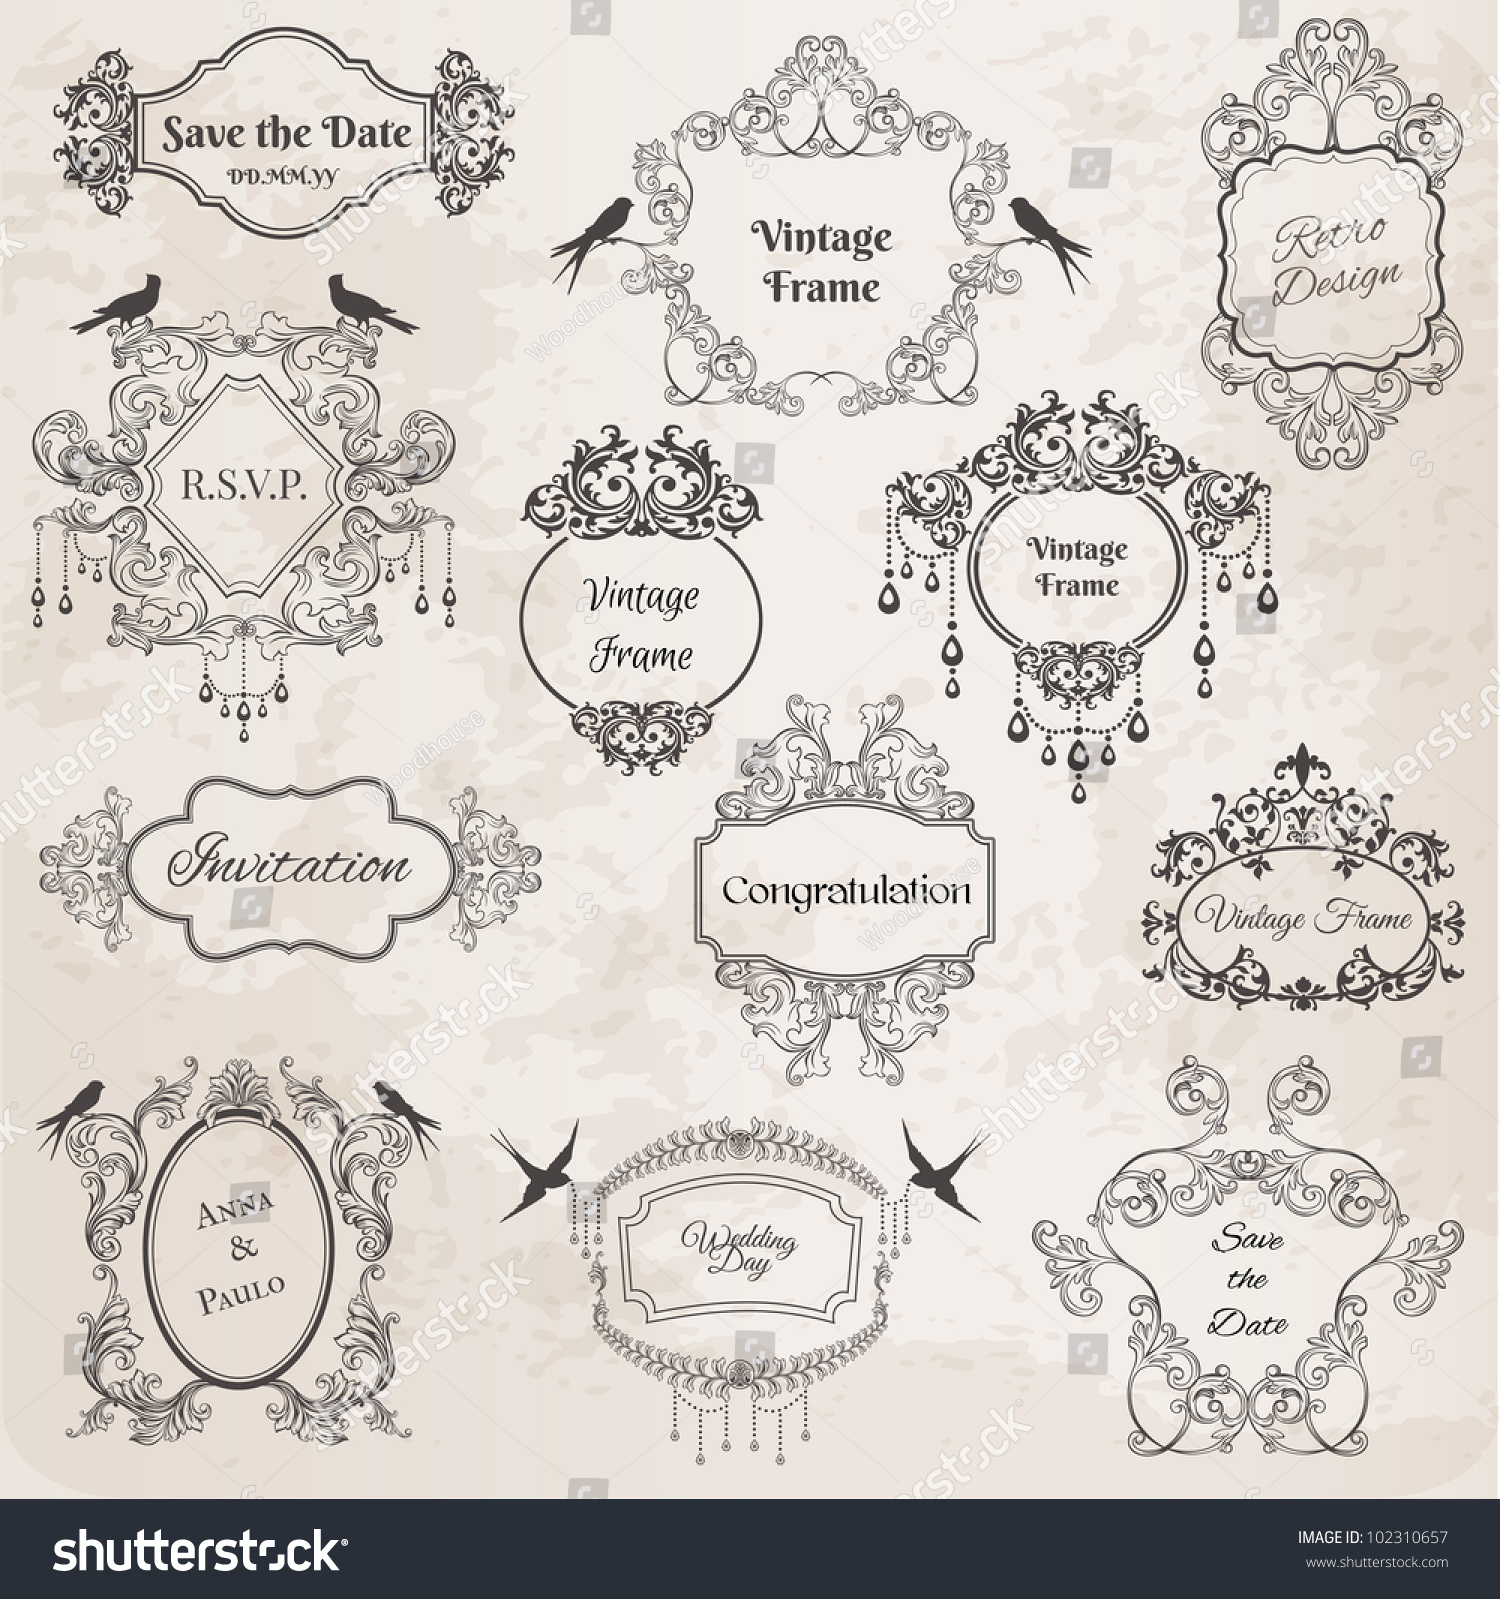 How to scrapbook a wedding invitation - Vintage Frames And Design Elements For Wedding Invitation Birthday Greetings Scrapbook